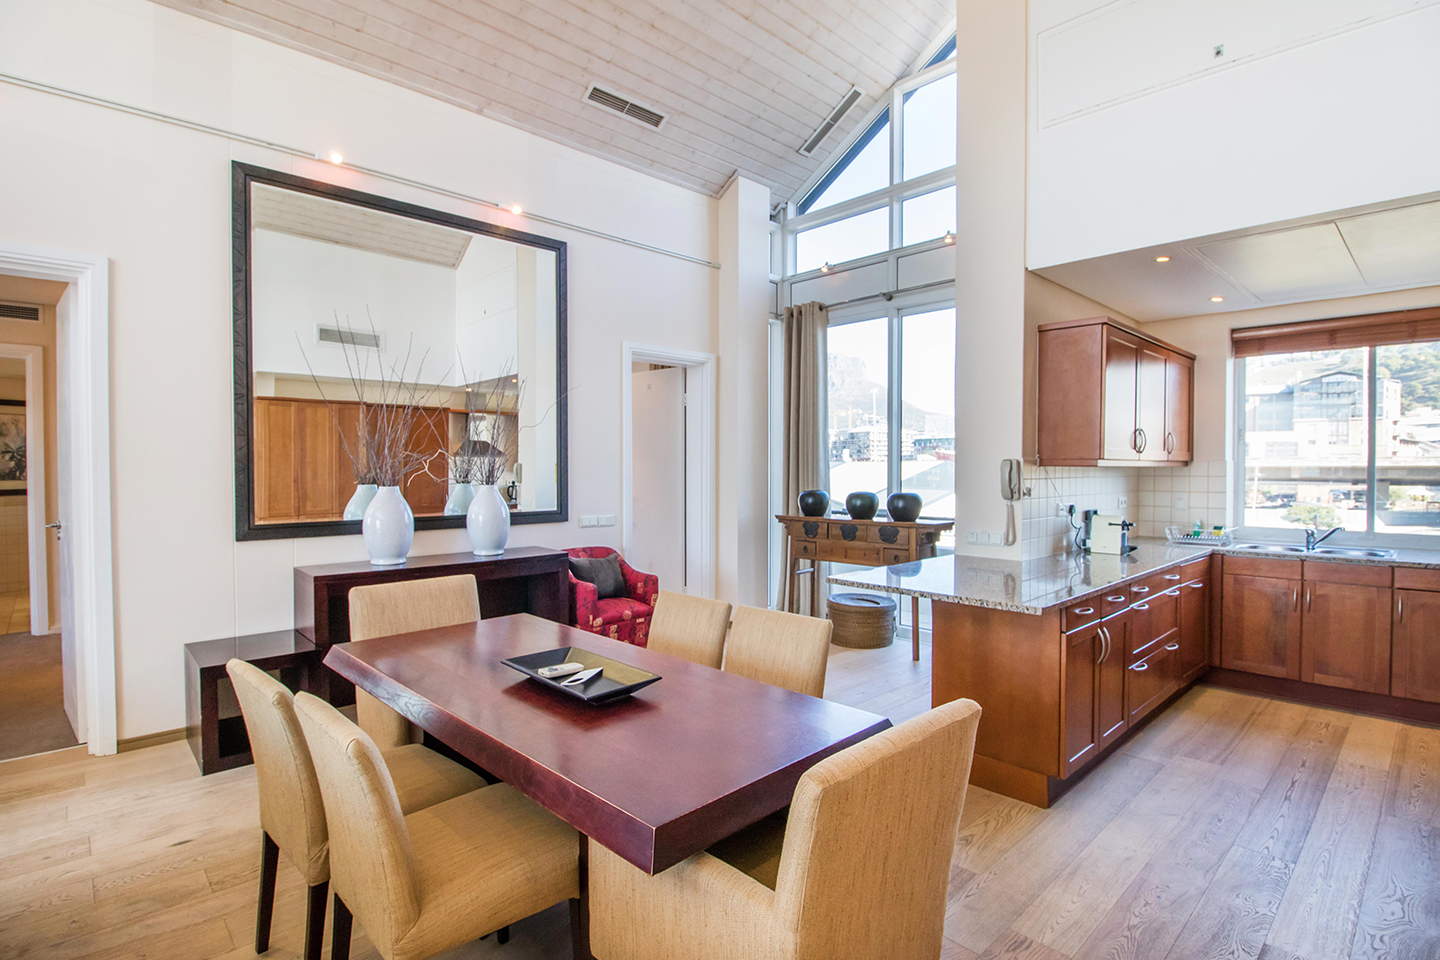 Dining space at Waterfront Village, Waterfront, Cape Town - Citybase Apartments